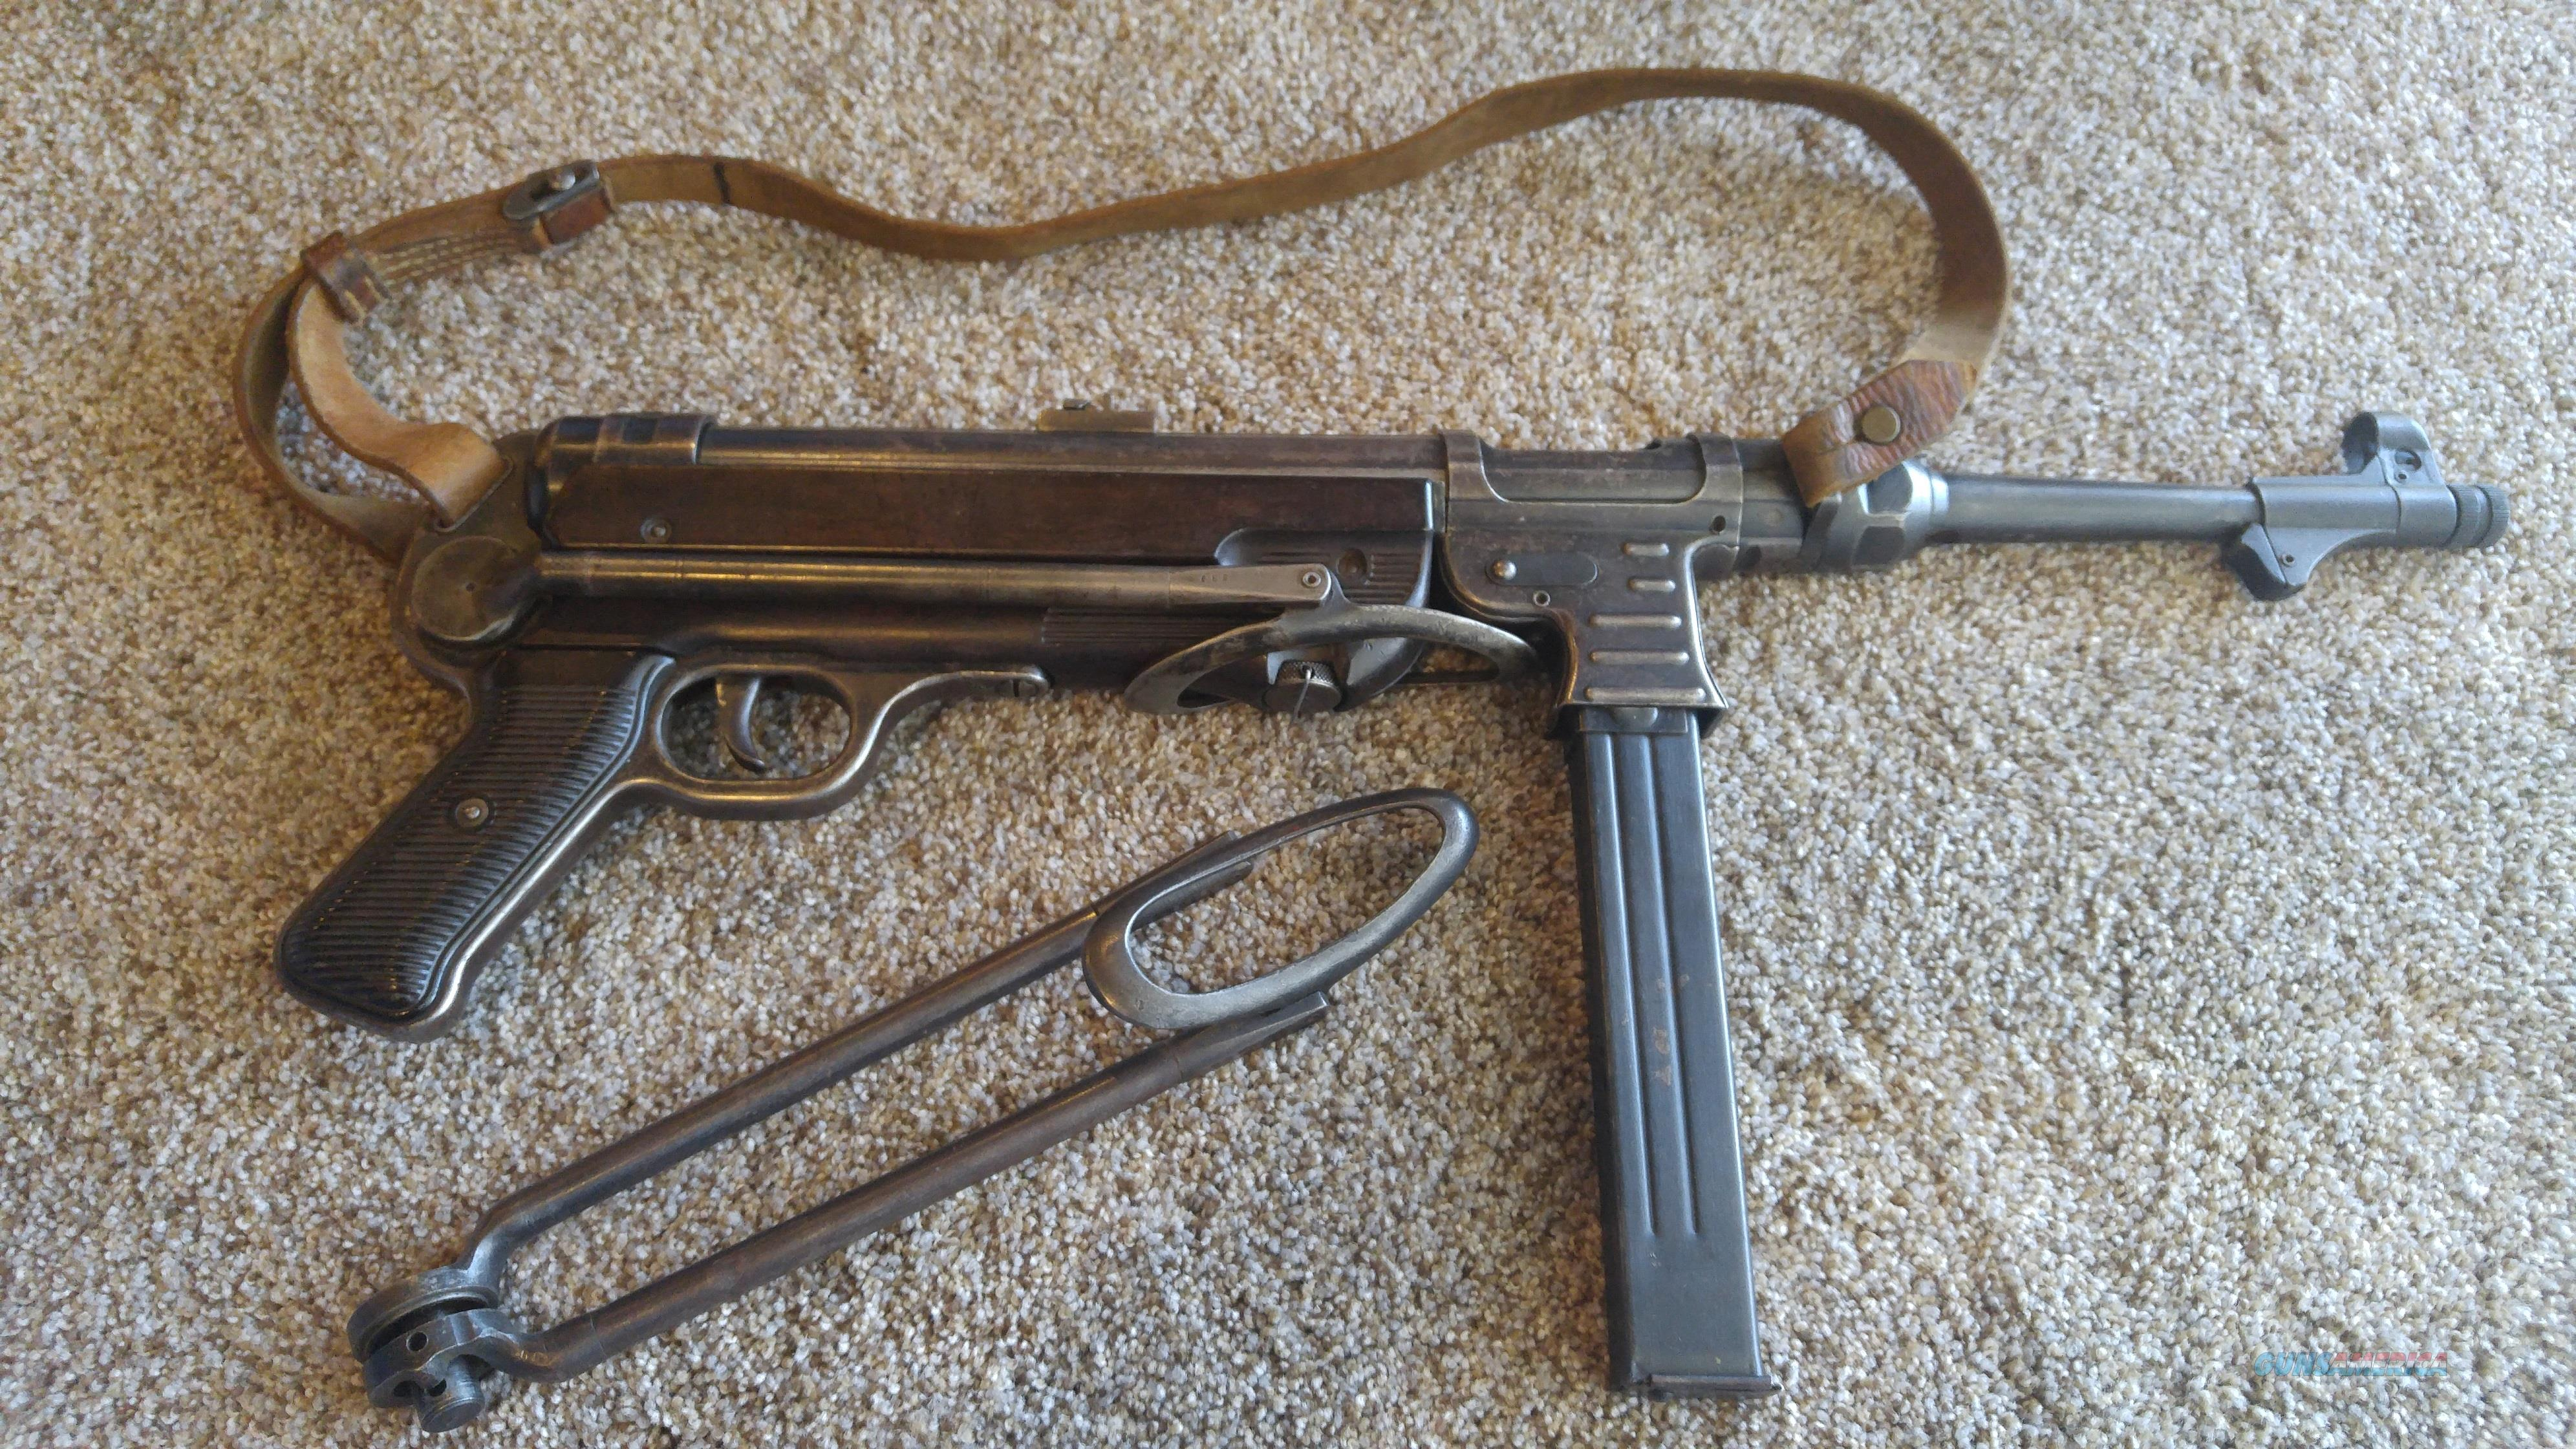 MP-40 9mm German Schmeisser  Guns > Pistols > Class 3 Pistols > Class 3 Subguns